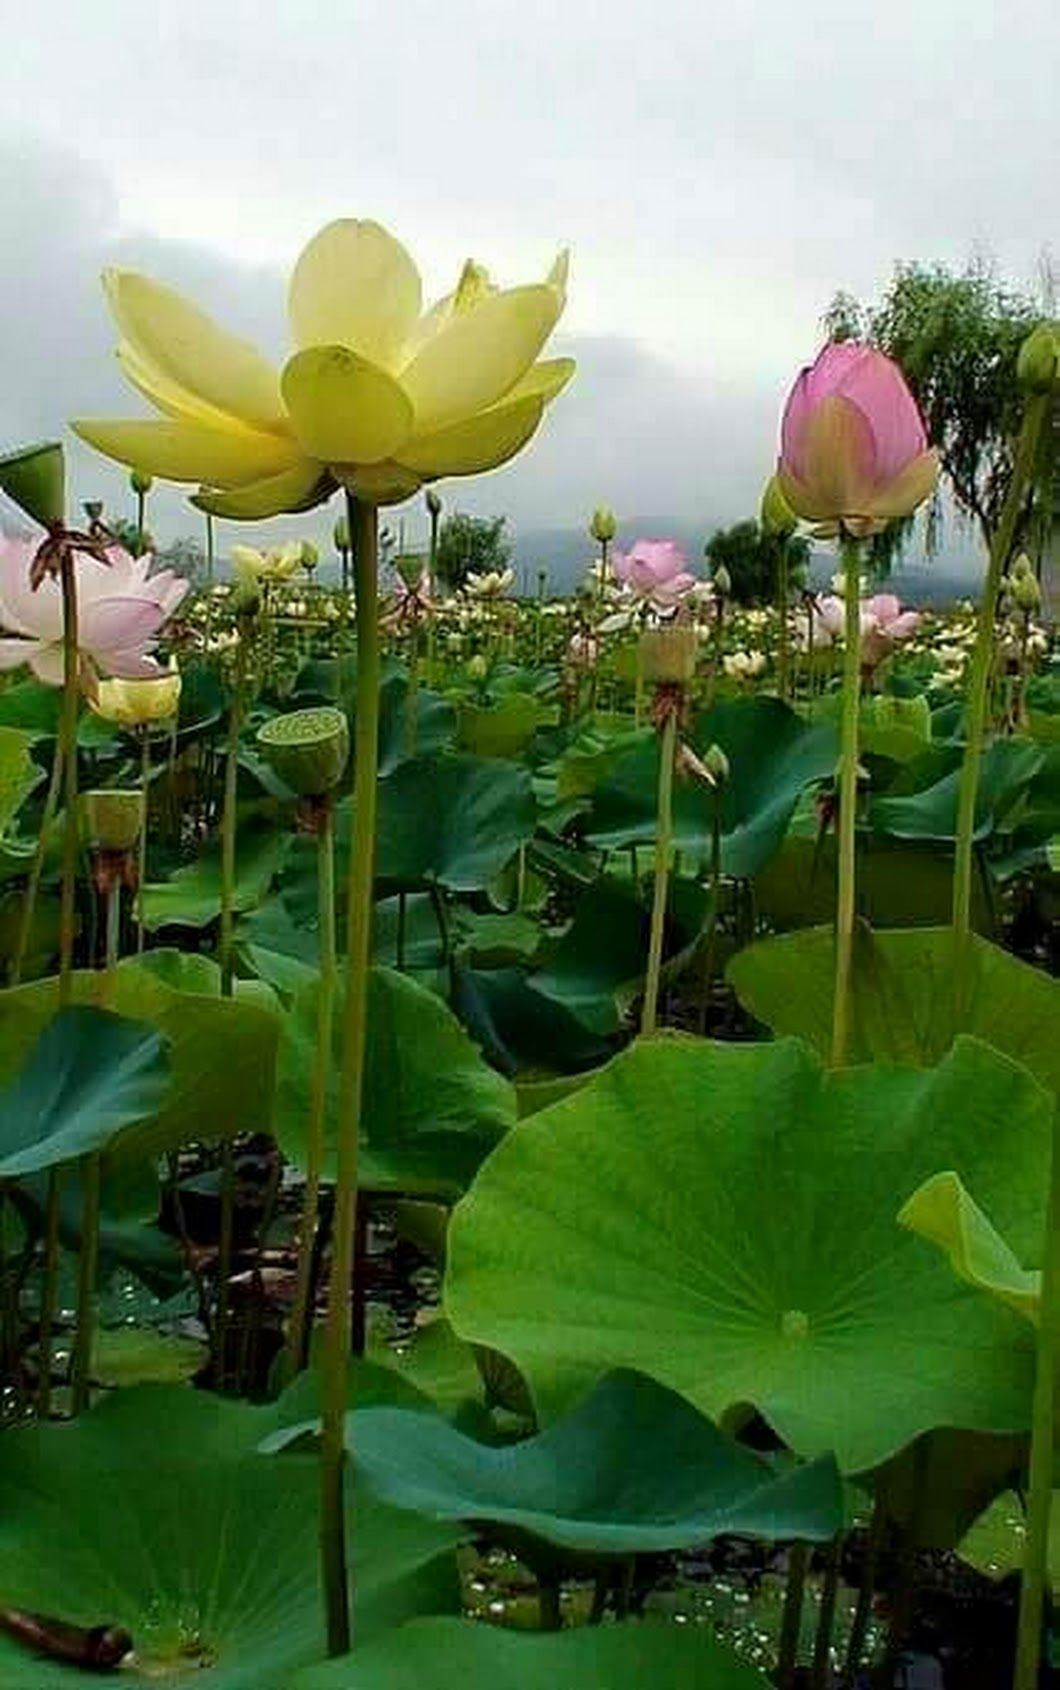 Pin By Elizabeth Gartman On Gardens Pinterest Lotus Flowers And